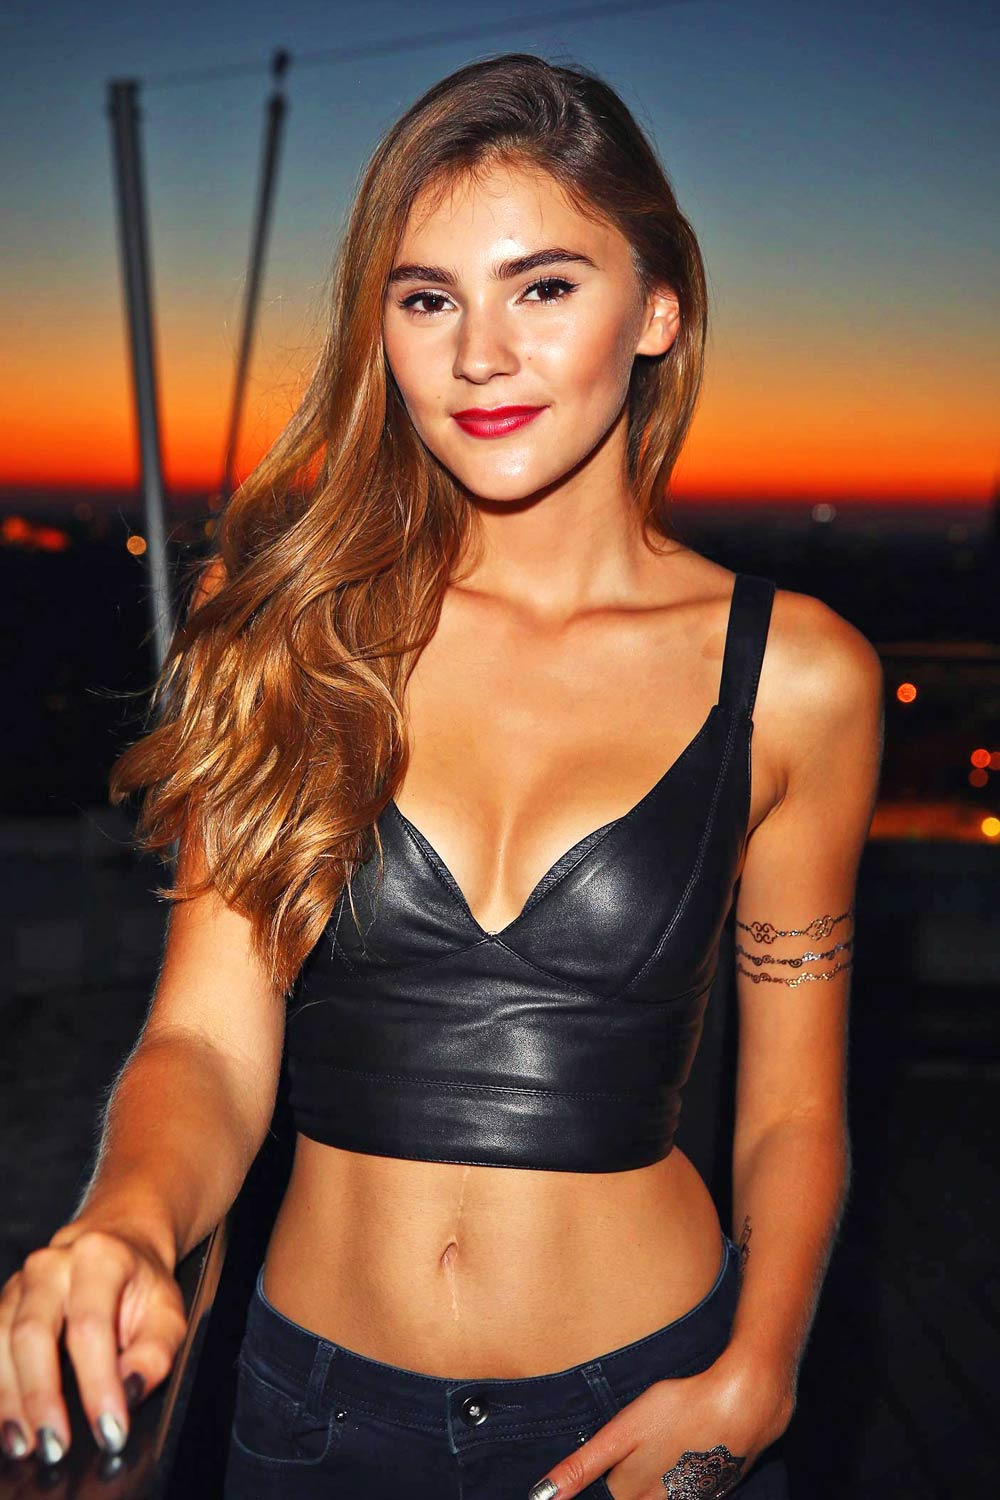 Celebrites Stefanie Giesinger nudes (37 photos), Topless, Sideboobs, Boobs, lingerie 2018